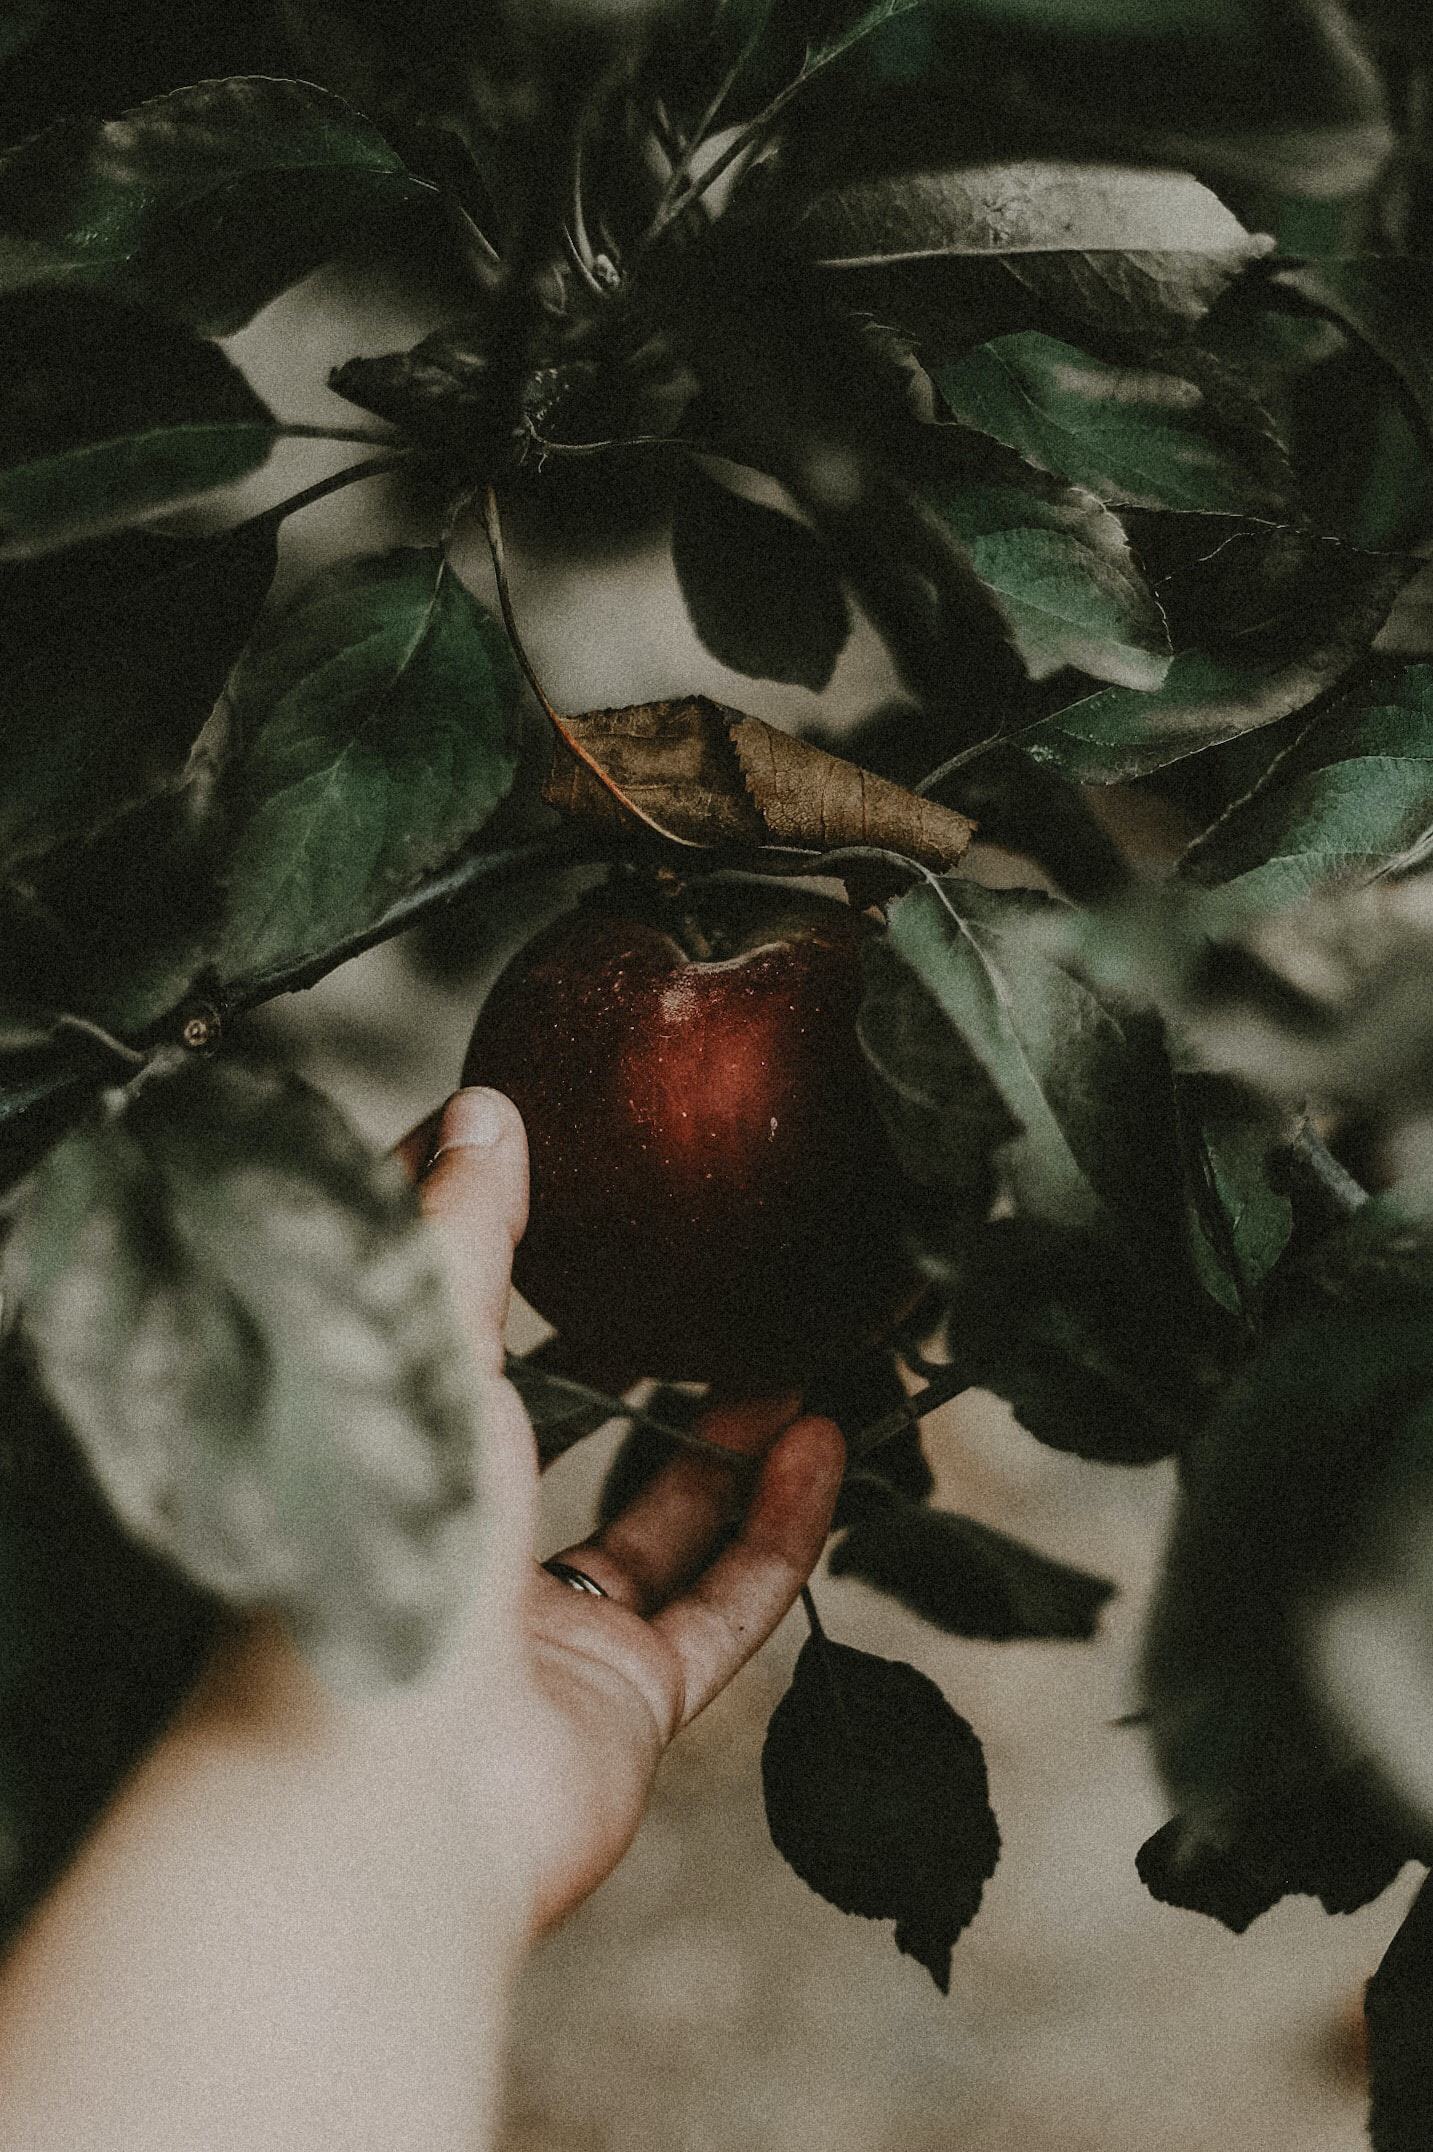 person holding red fruit